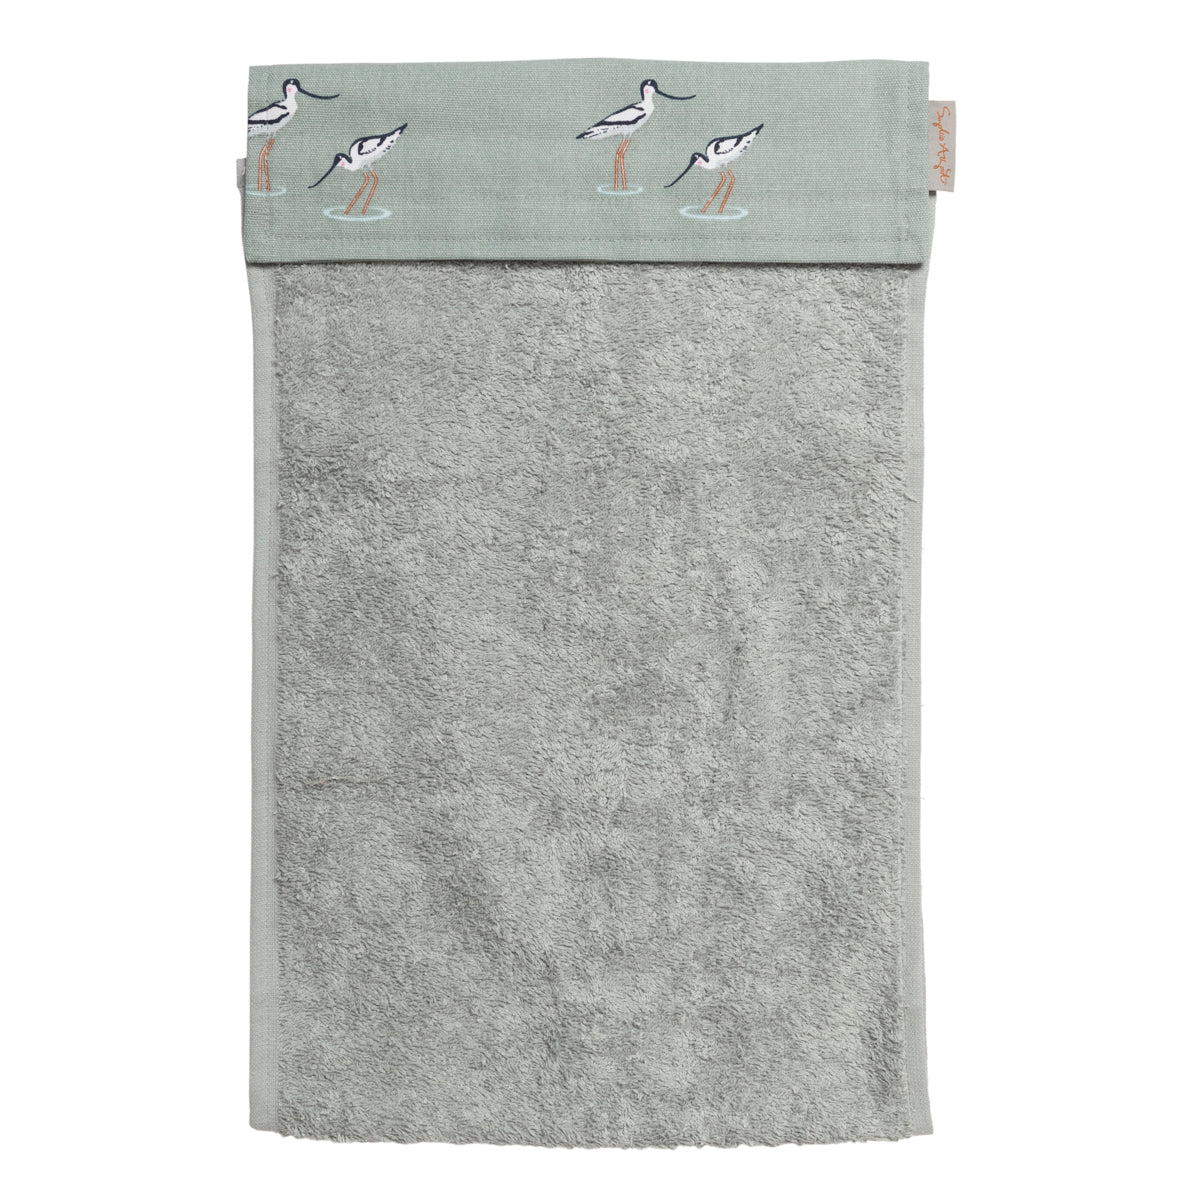 Roller hand towel by Sophie Allport in fresh coastal design